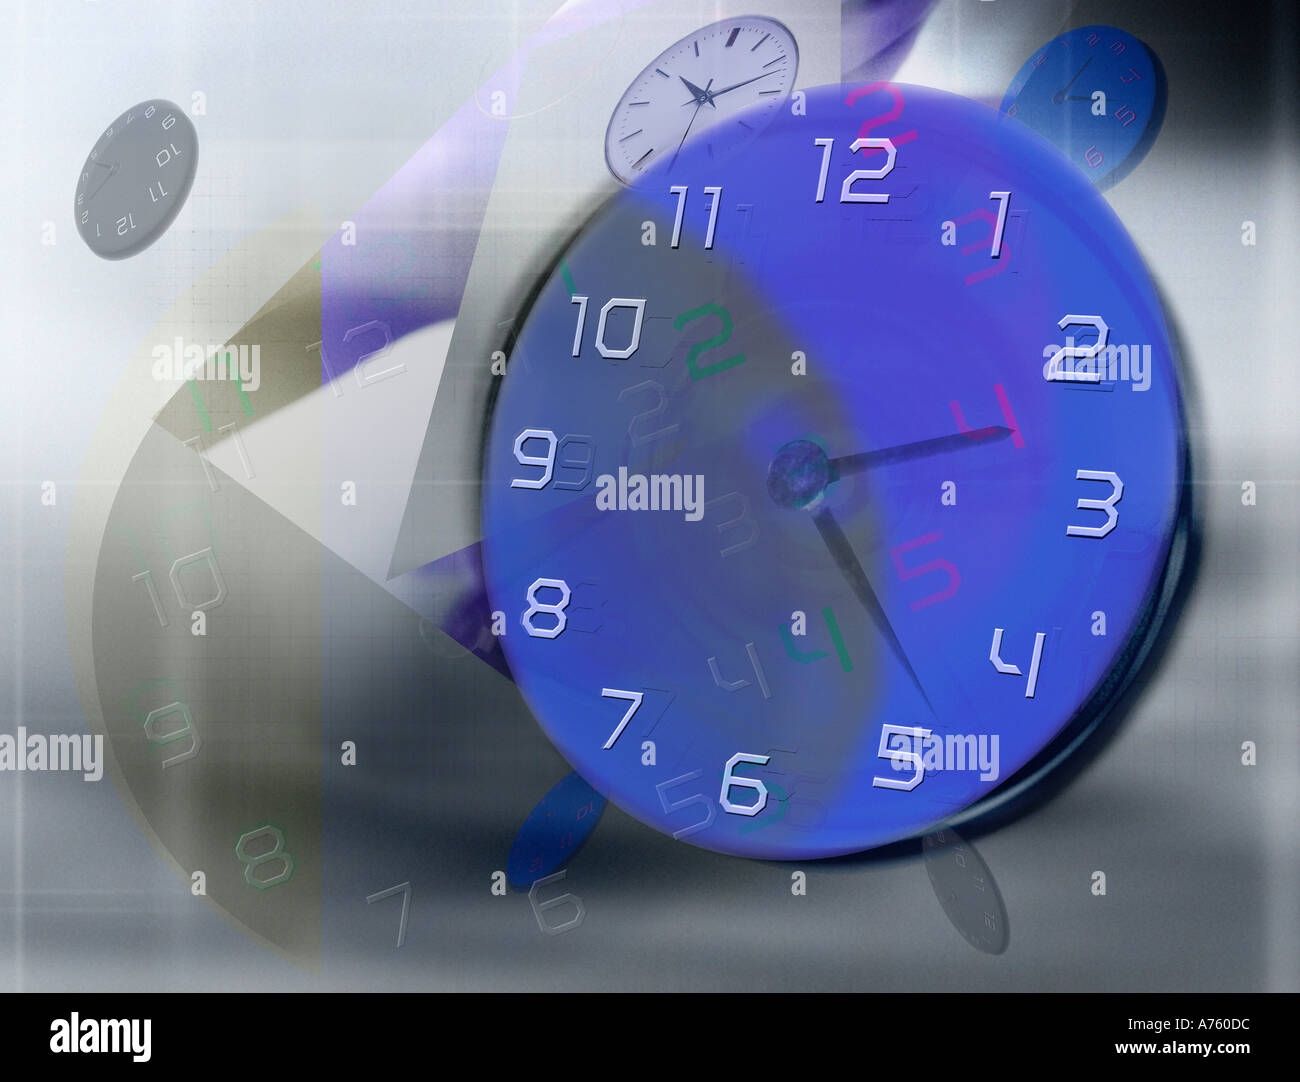 Blue timepiece on abstract motion background - Stock Image